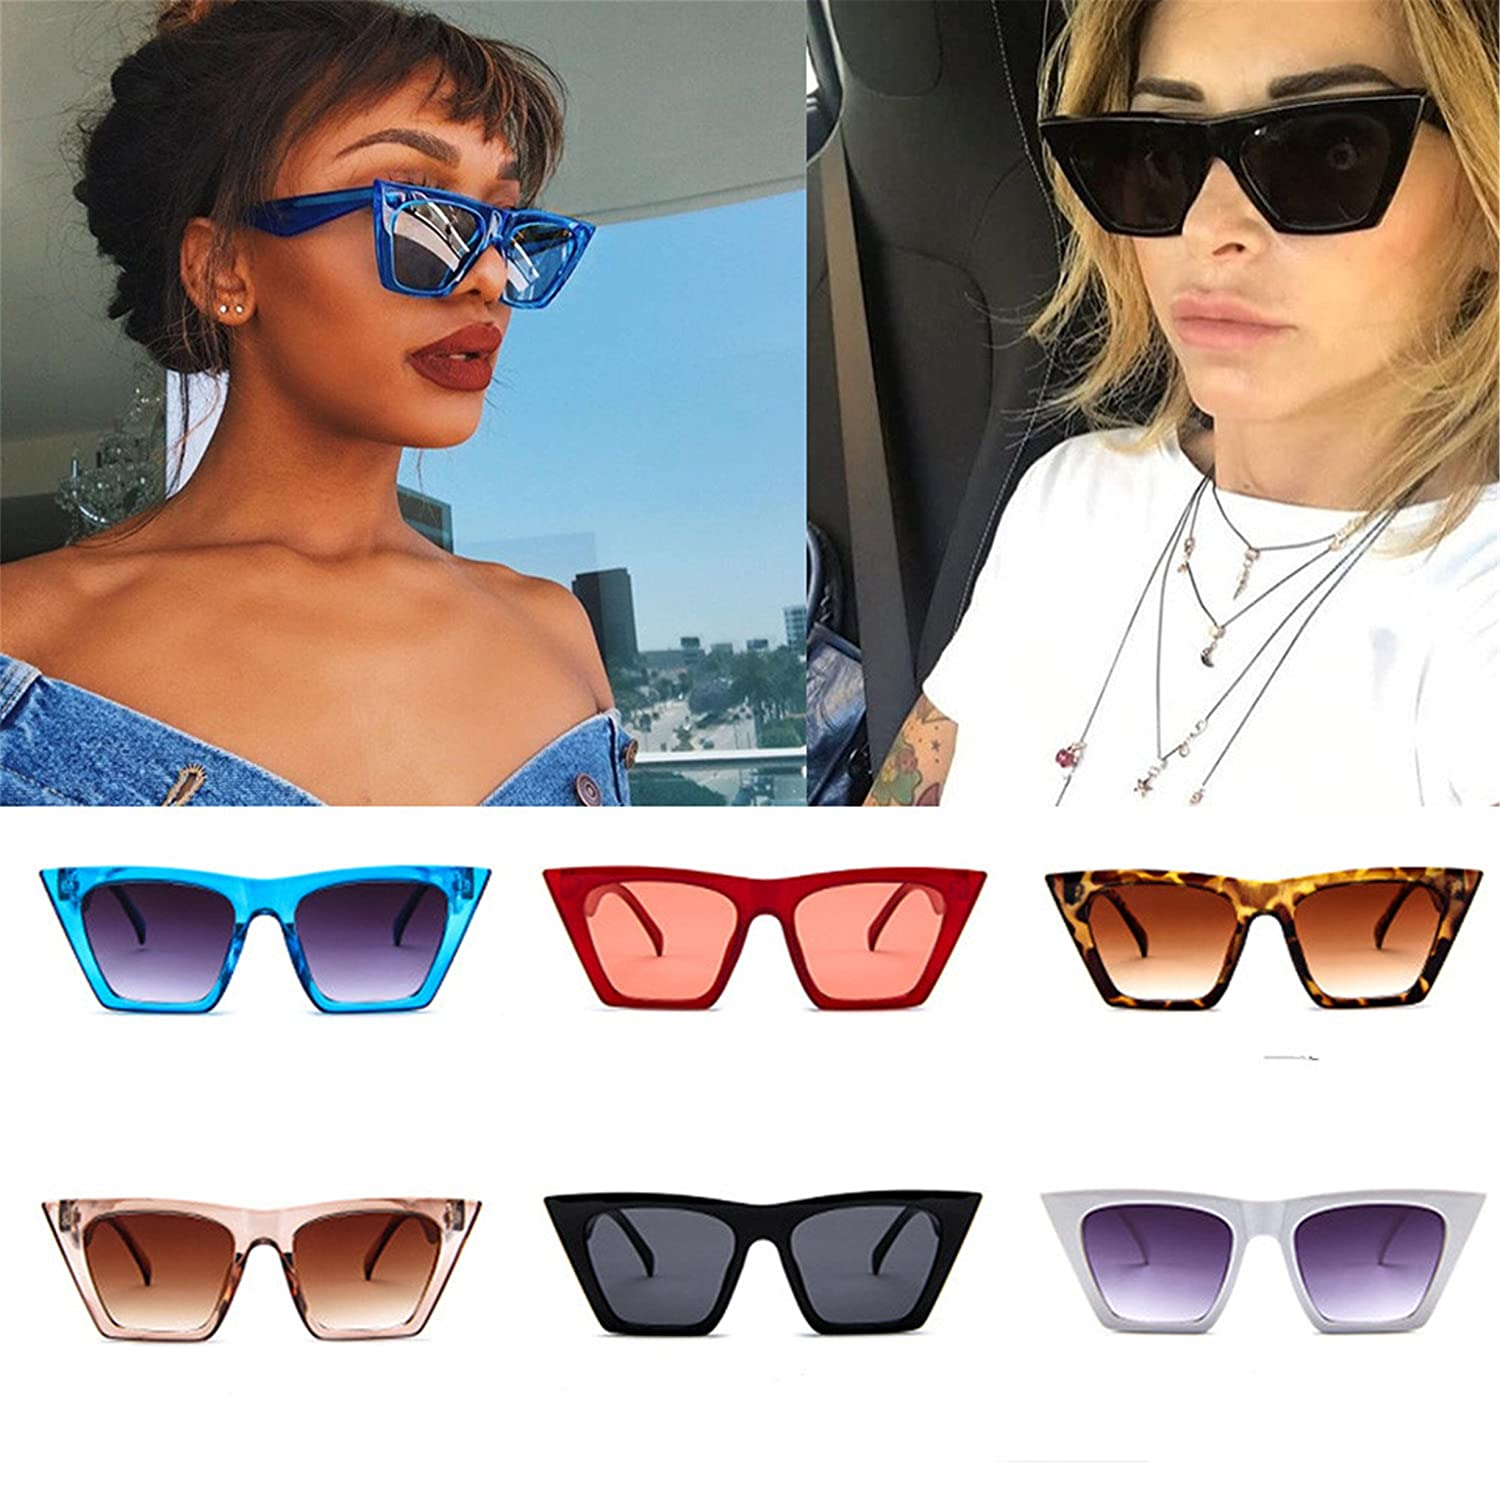 8a39555e74e Amazon.com  HOT SALE! BYEEE Lucky your eyes - Vintage Cat Eye Sunglasses